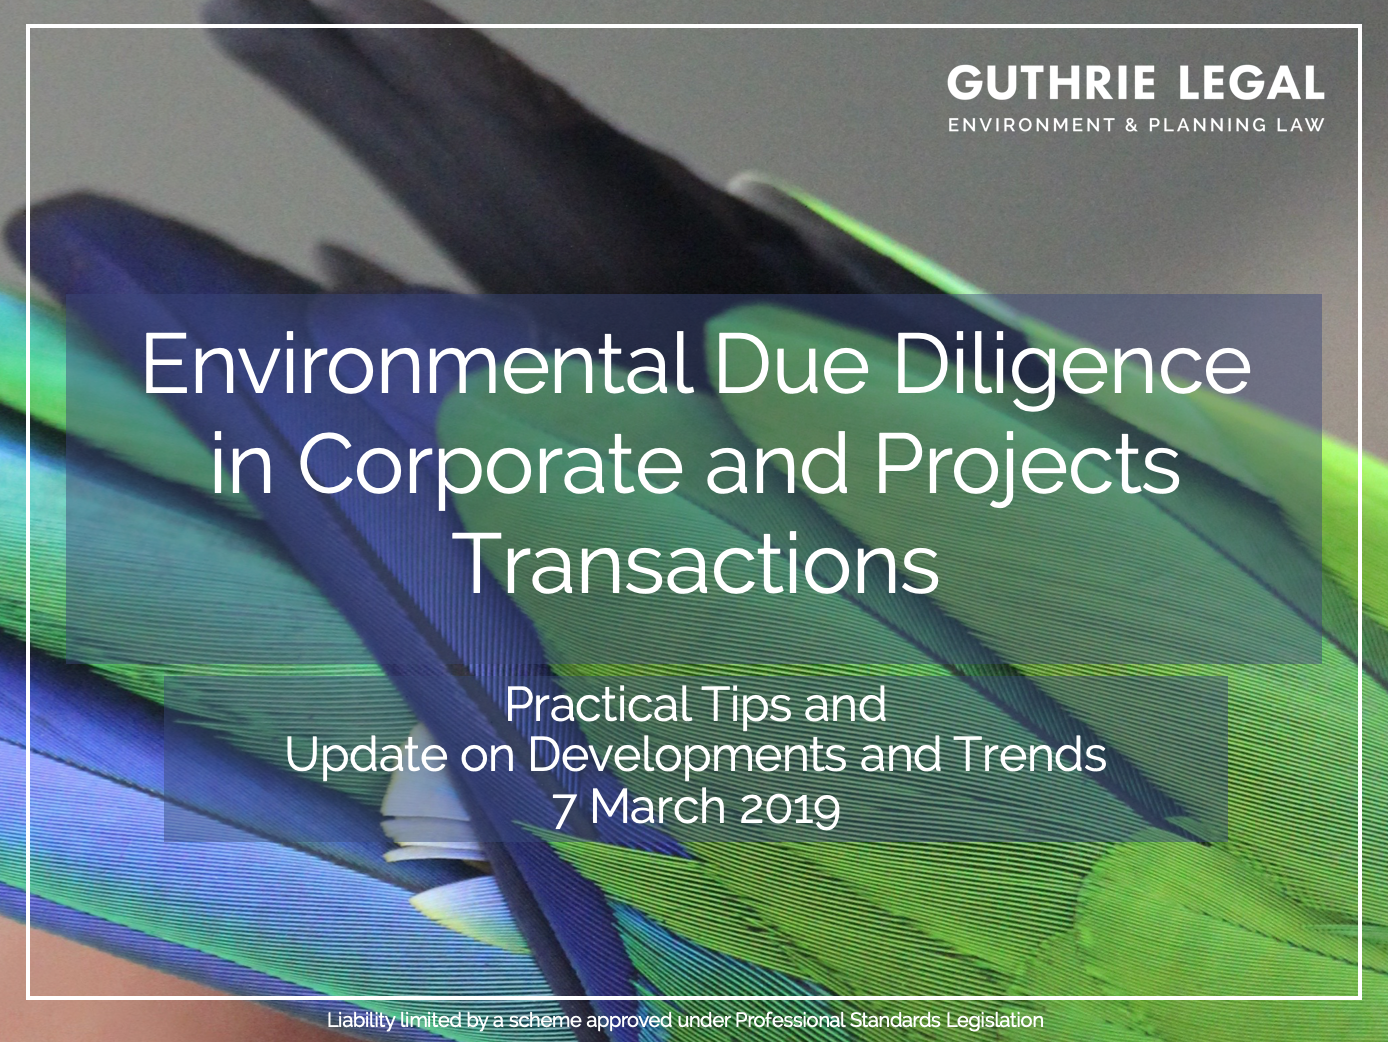 Guthrie Legal Environmental Due Diligence